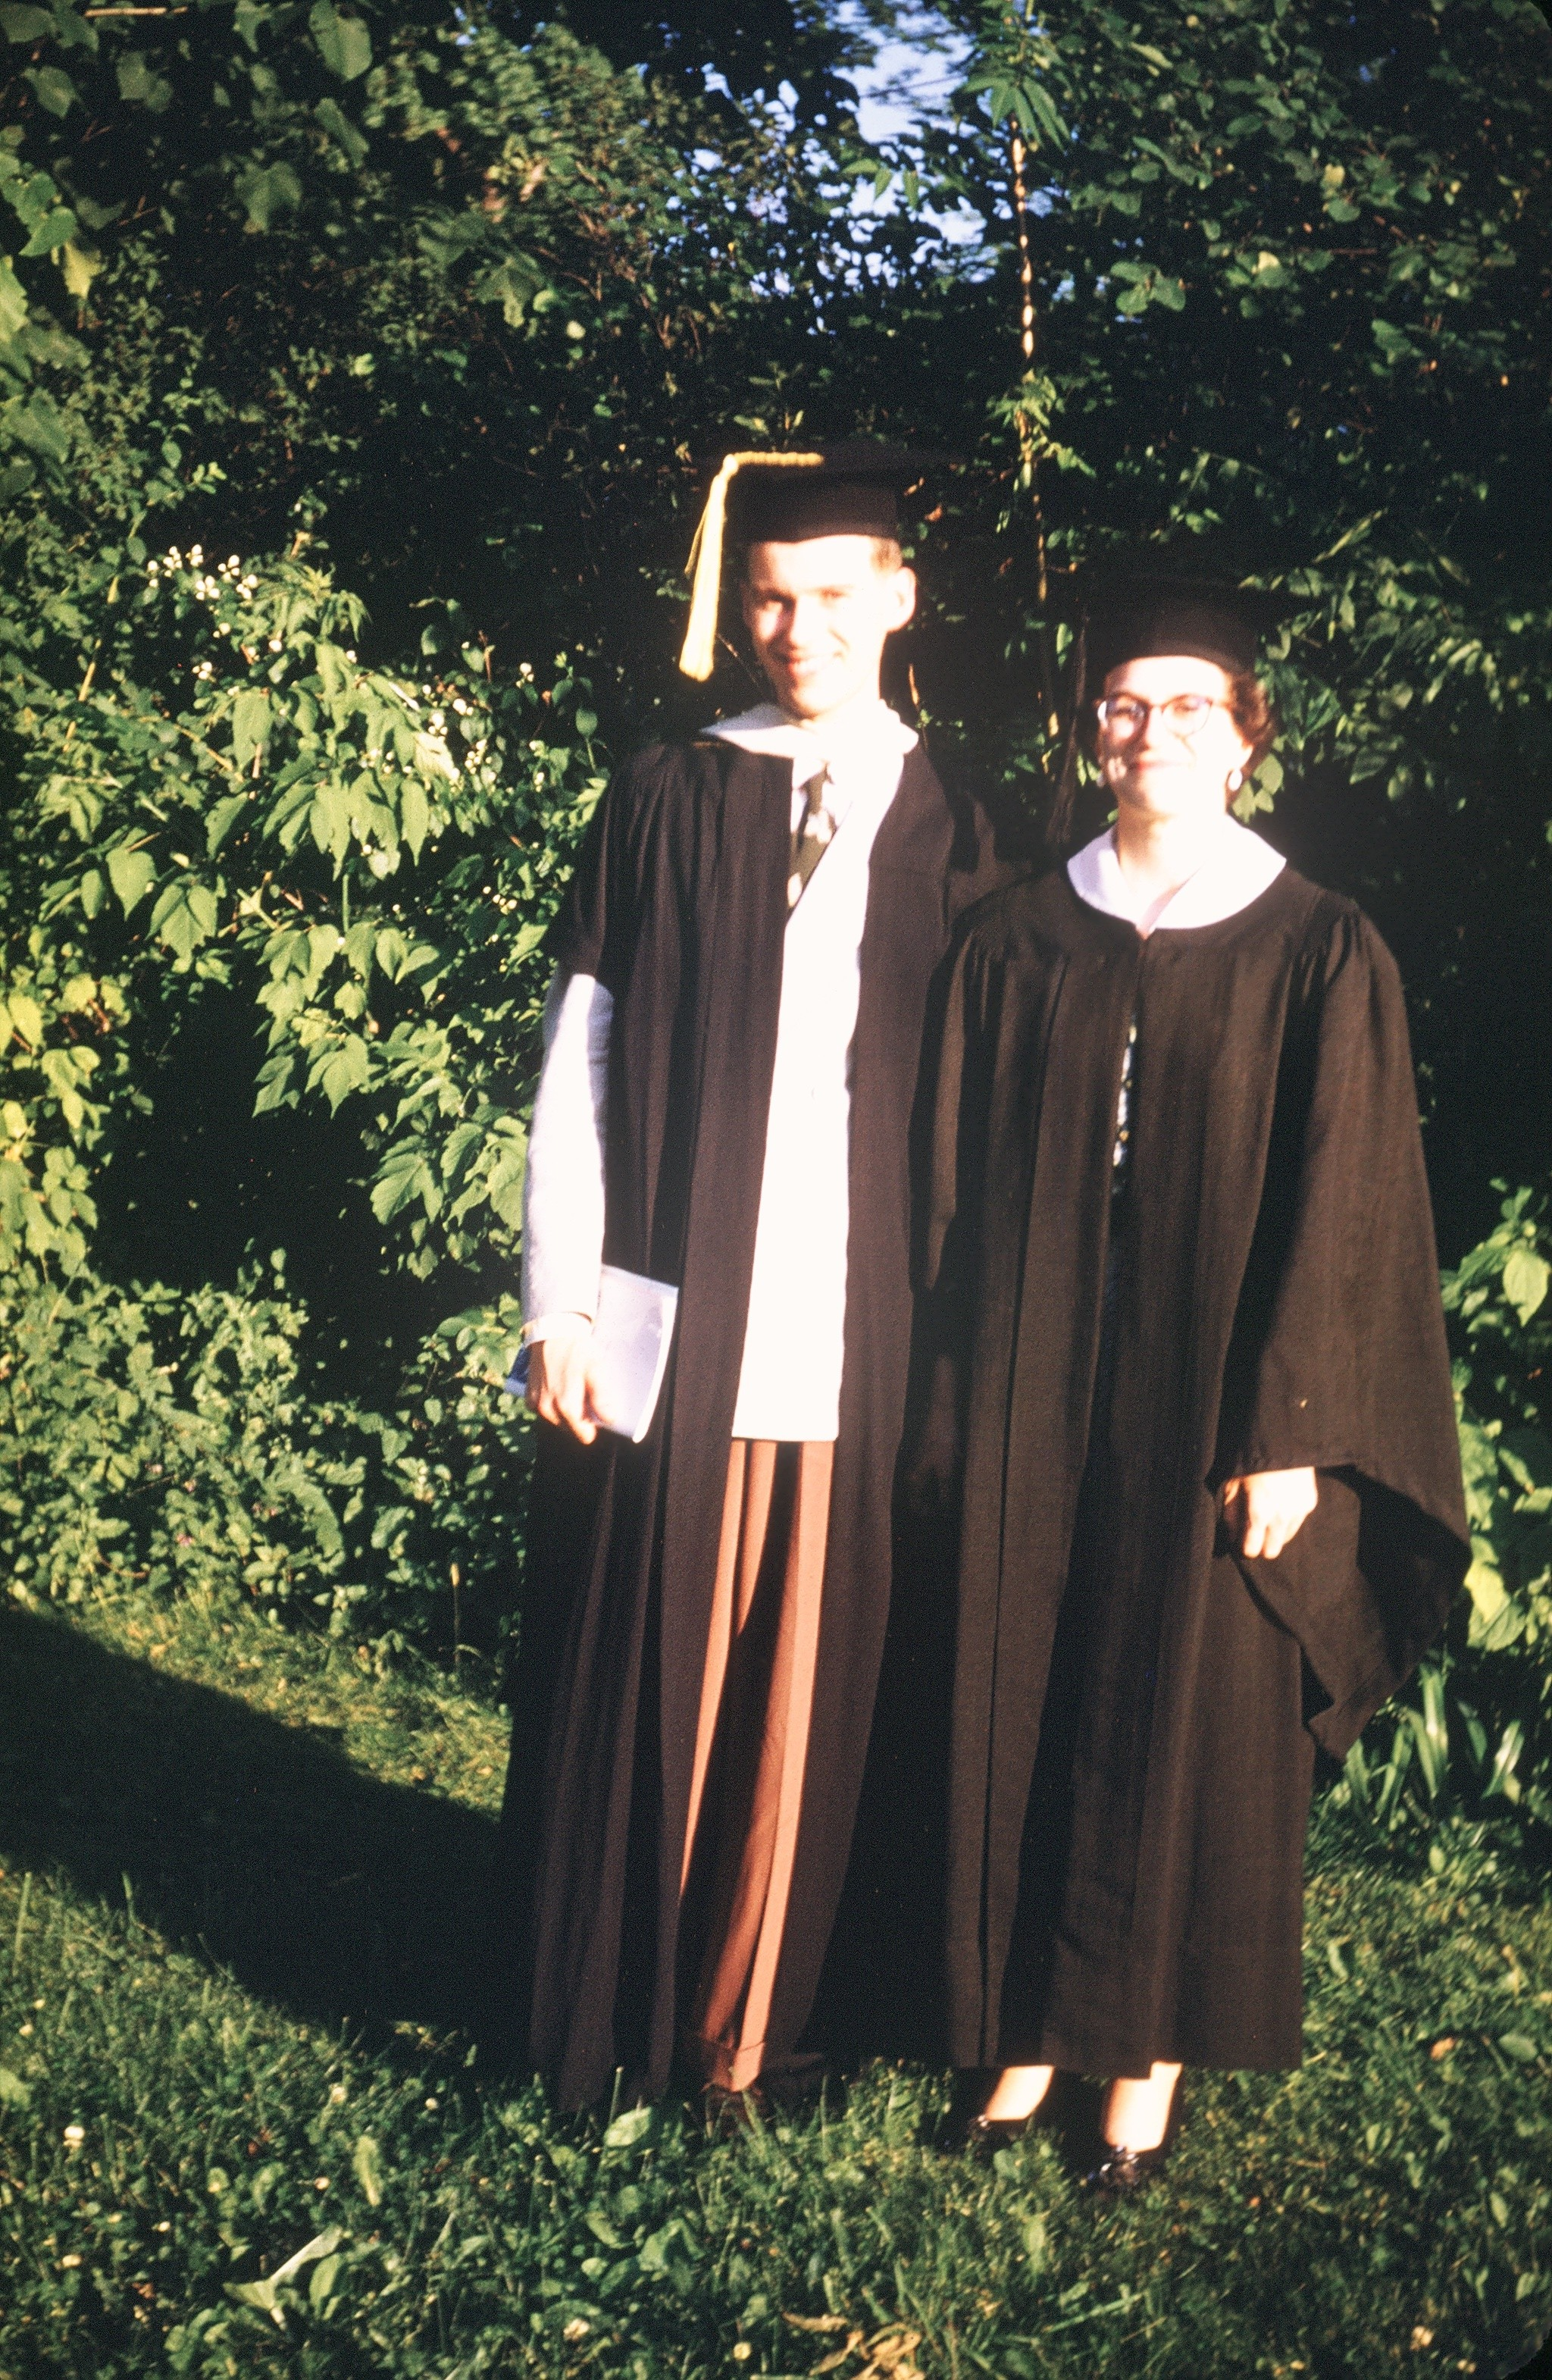 Letitia Lingle Bell on her graduation day at the University of Michigan